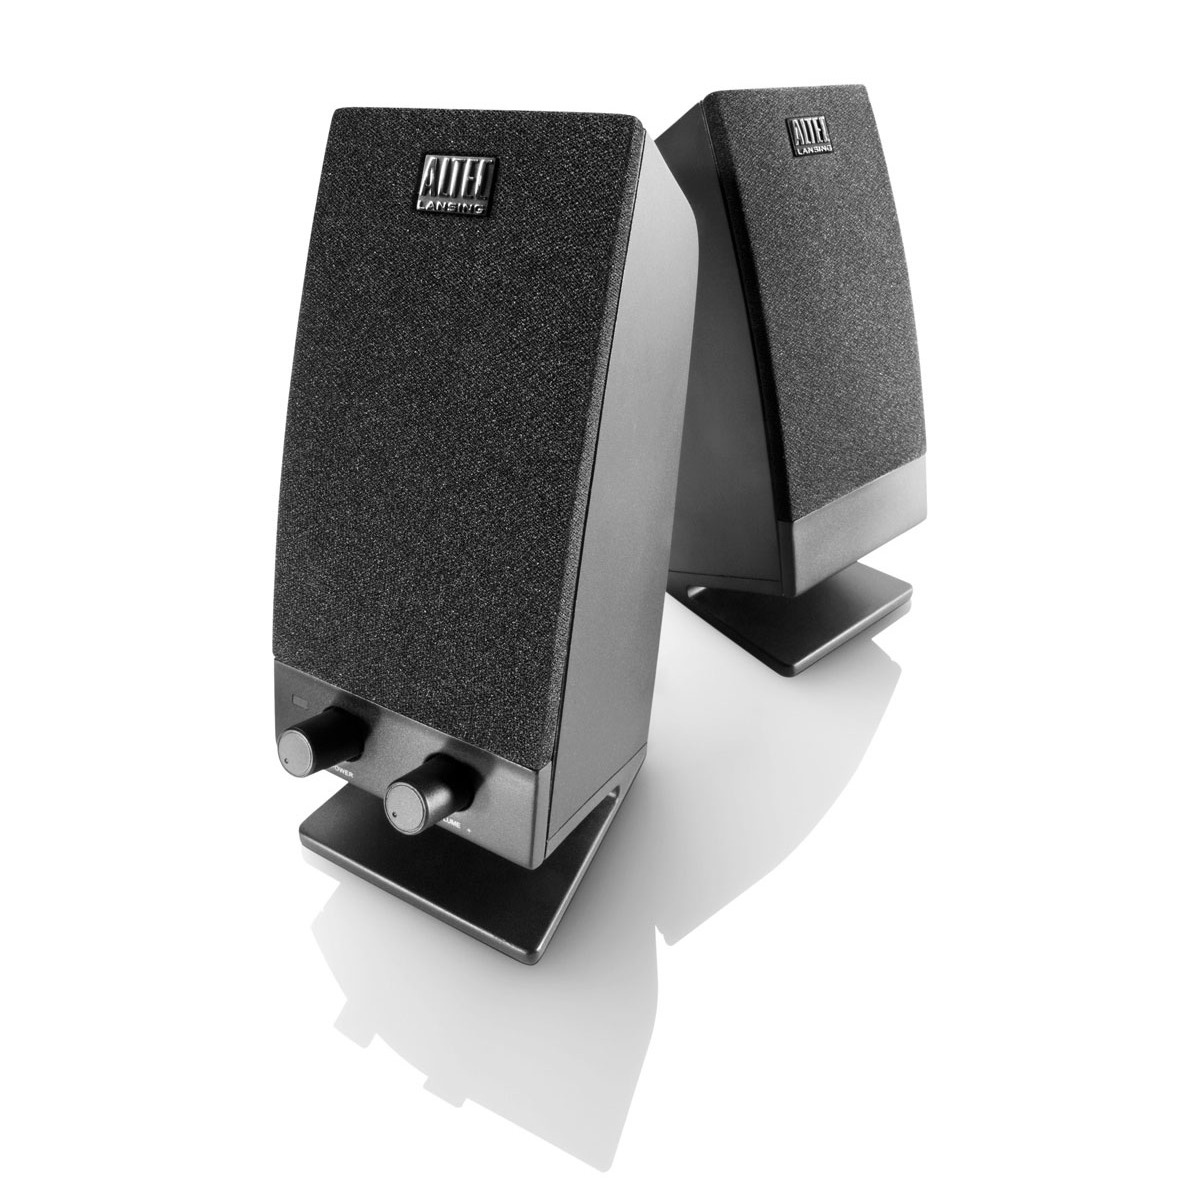 altec lansing bxr1320 enceinte pc altec lansing sur. Black Bedroom Furniture Sets. Home Design Ideas